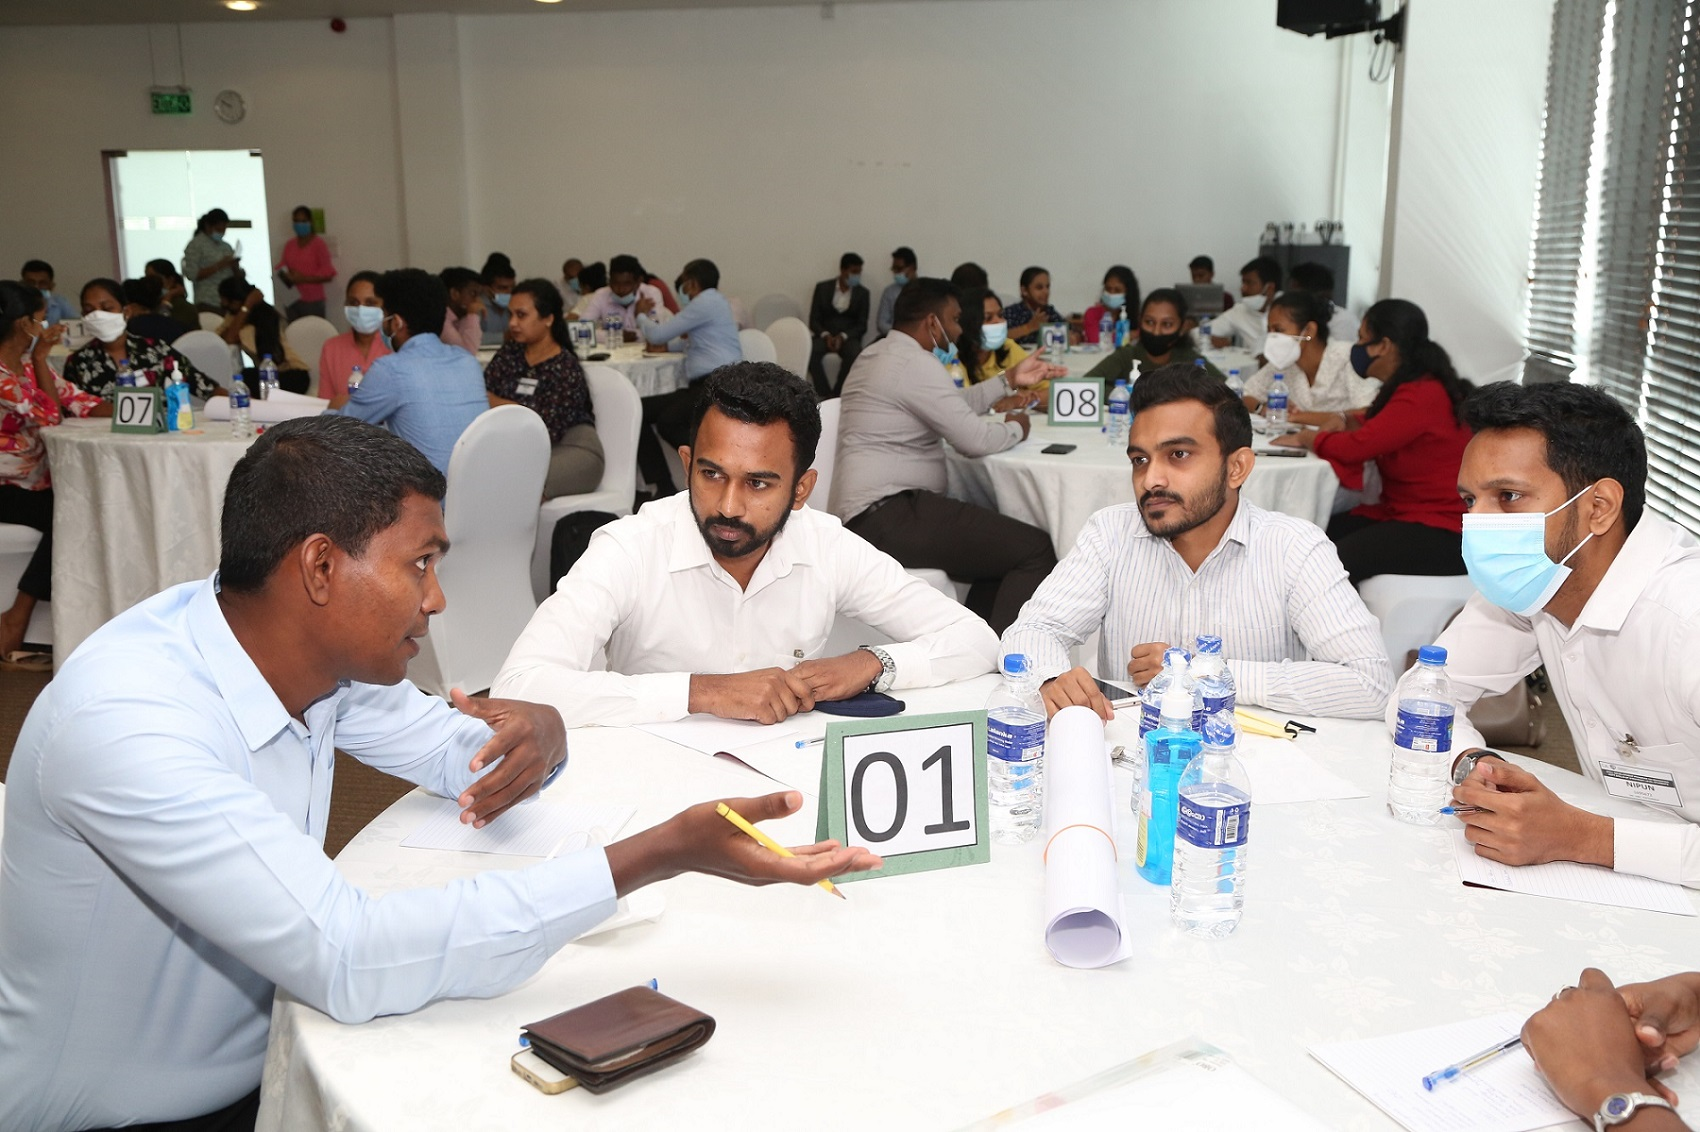 CA passed finalists taking part in an interactive activity at the skills development program organised by CA Sri Lanka.